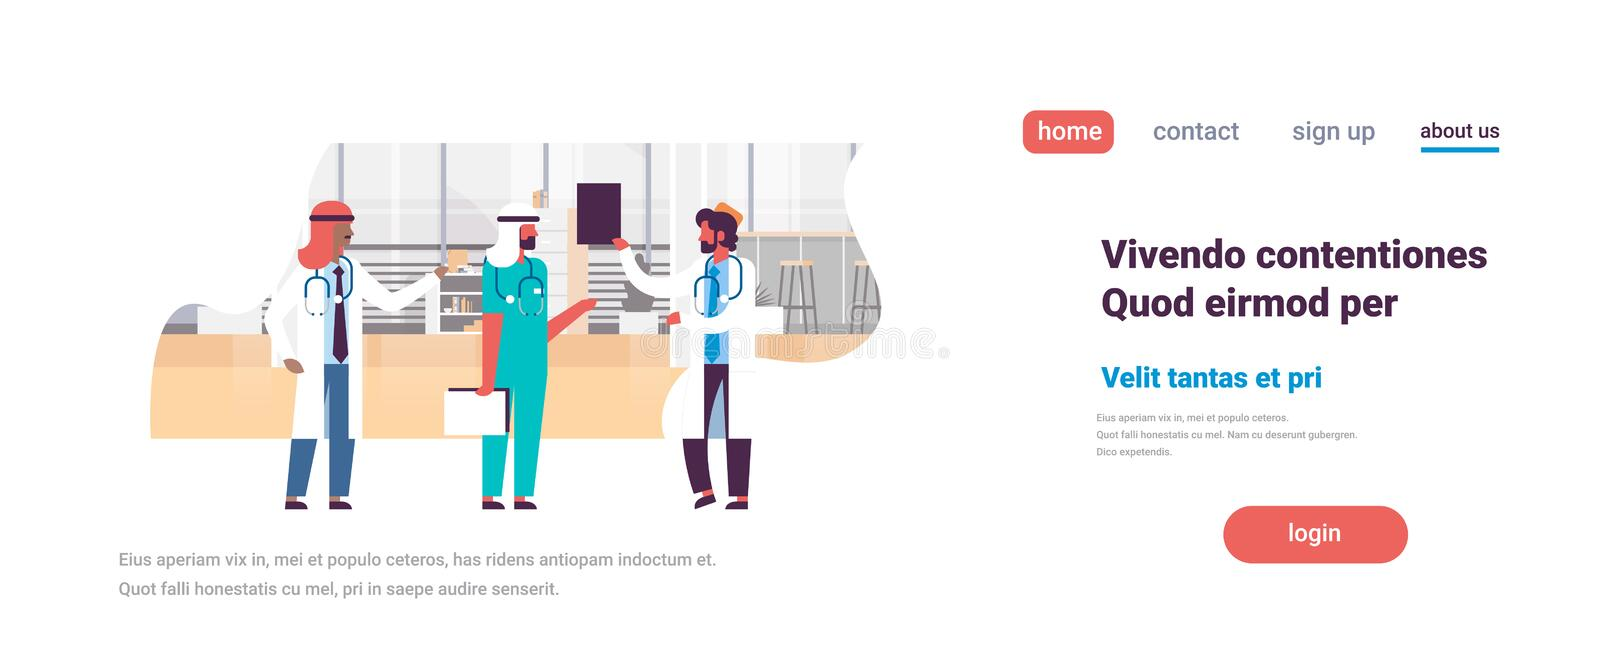 Group arabic men doctors stethoscope hospital communication diverse arab man medical workers flat full length copy space stock illustration